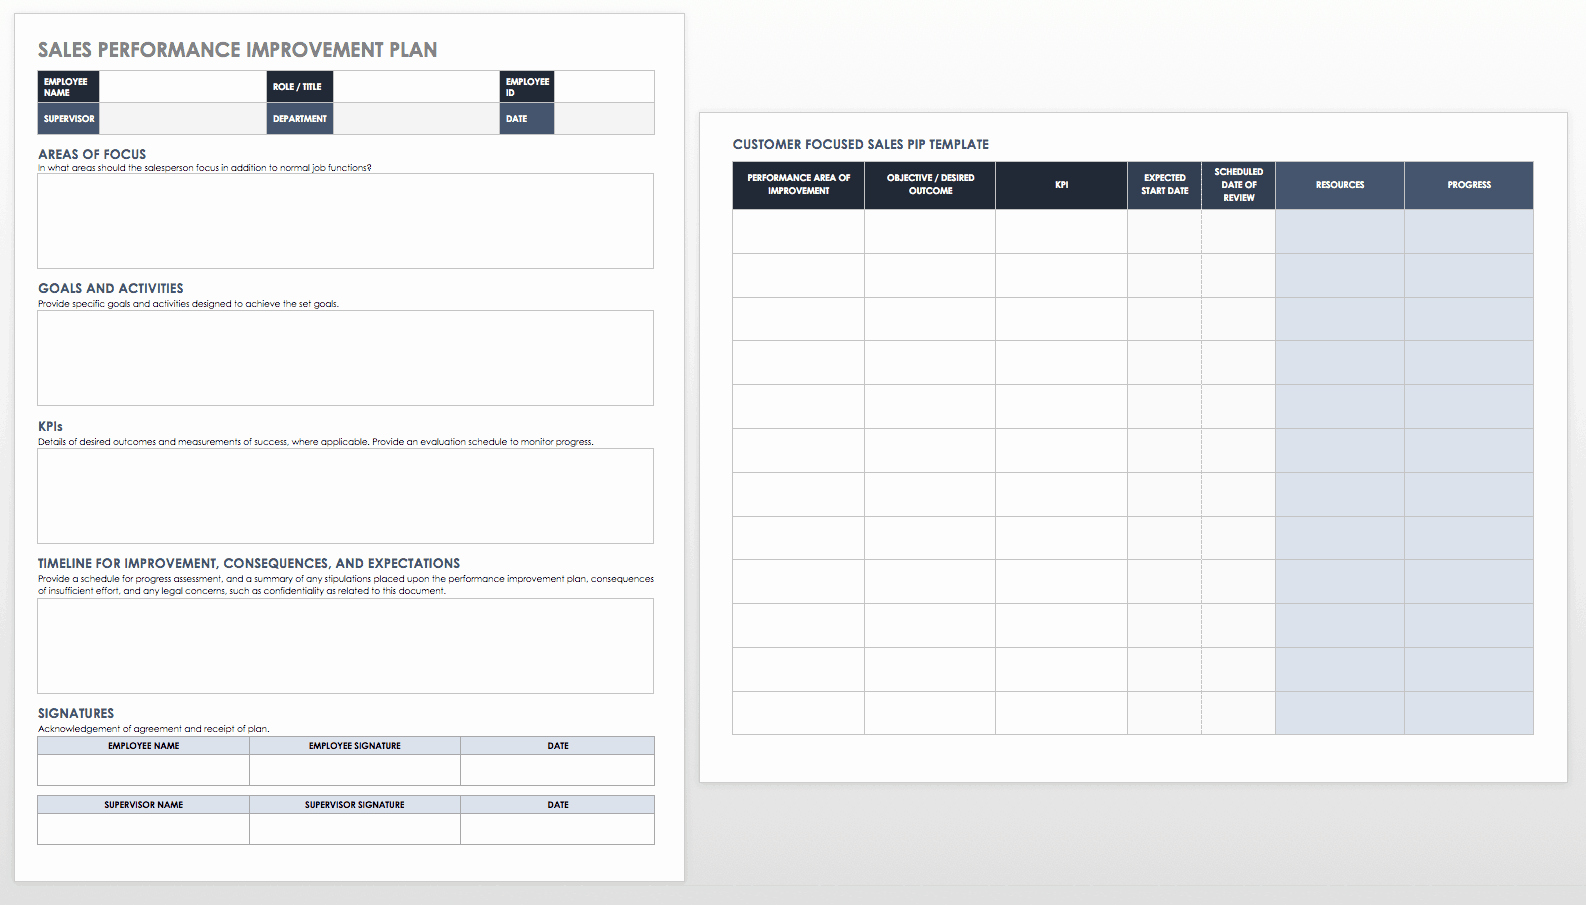 Sales Performance Improvement Plan Template Lovely Performance Improvement Plan Templates